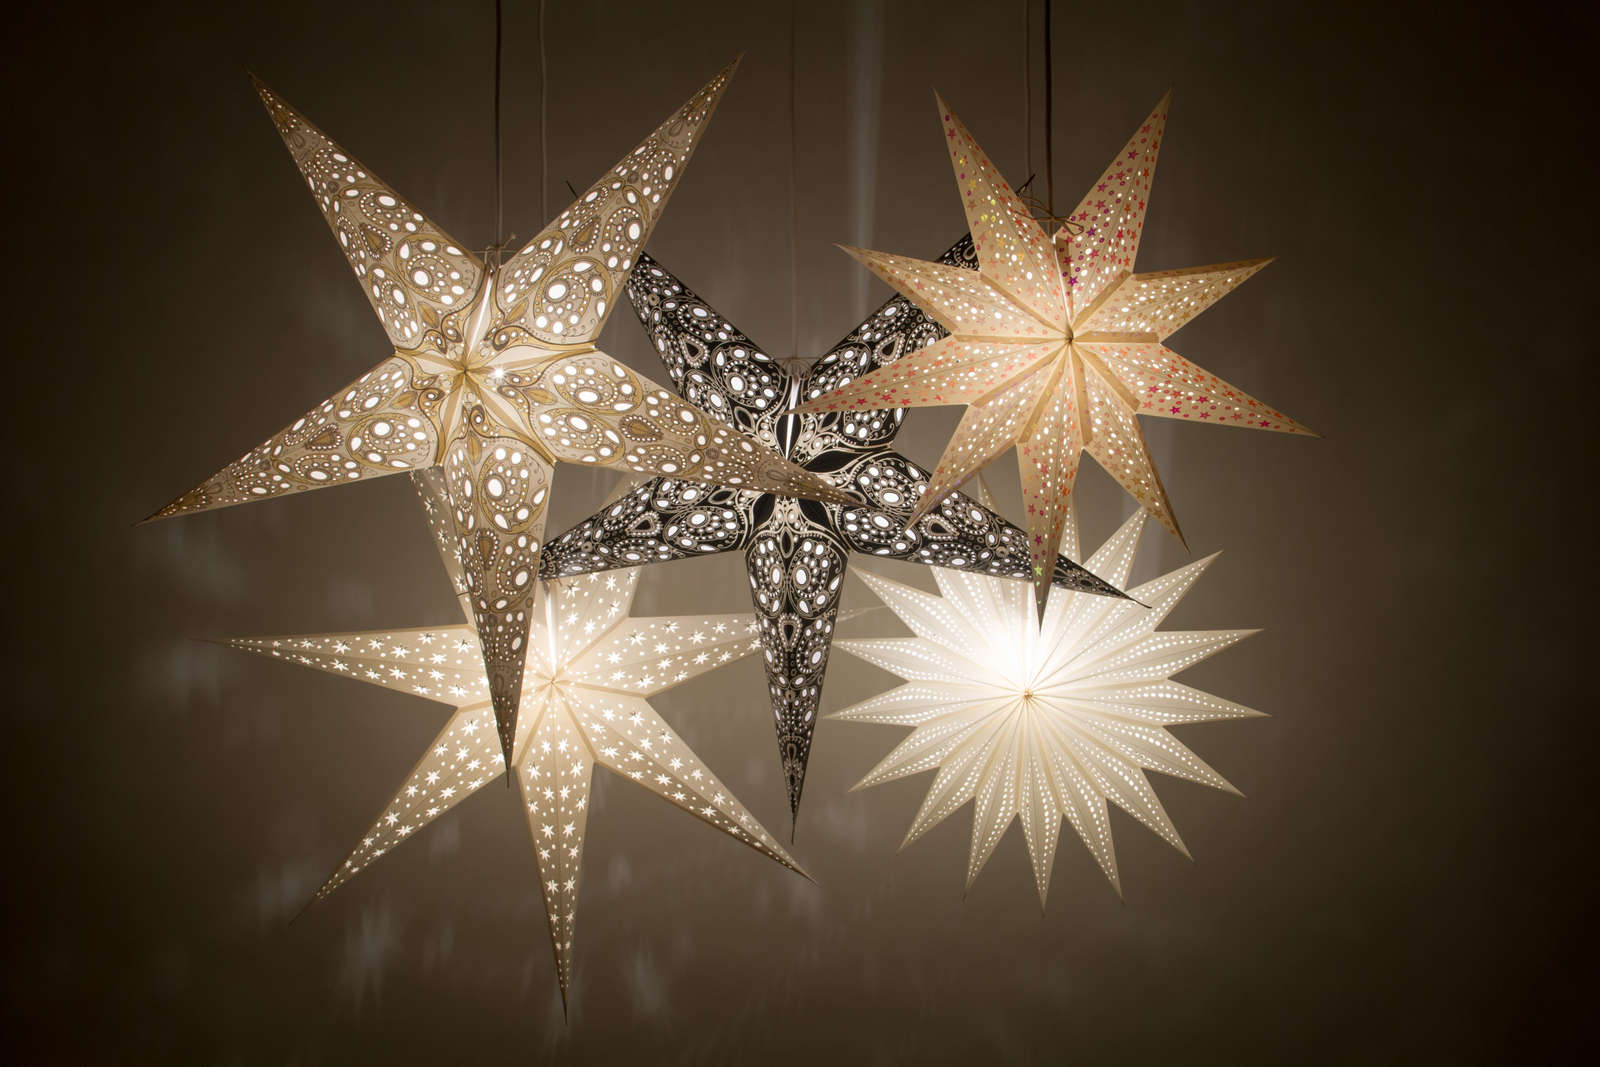 Paper Christmas Decorations.Details About Deluxe Paper Star Light Shades Hanging Ceiling Lampshades Christmas Decorations